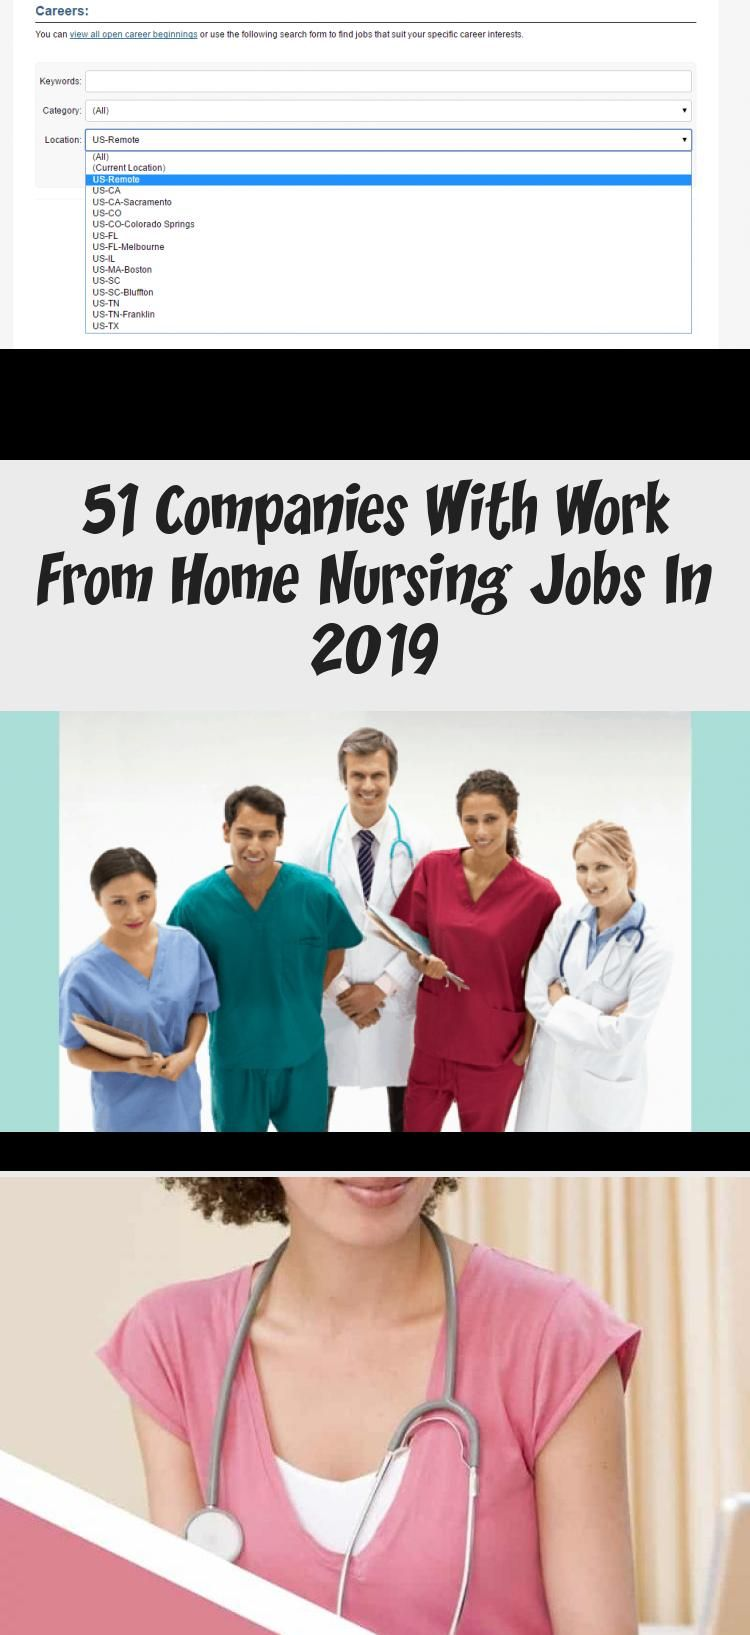 51 Companies With Work From Home Nursing Jobs In 2019